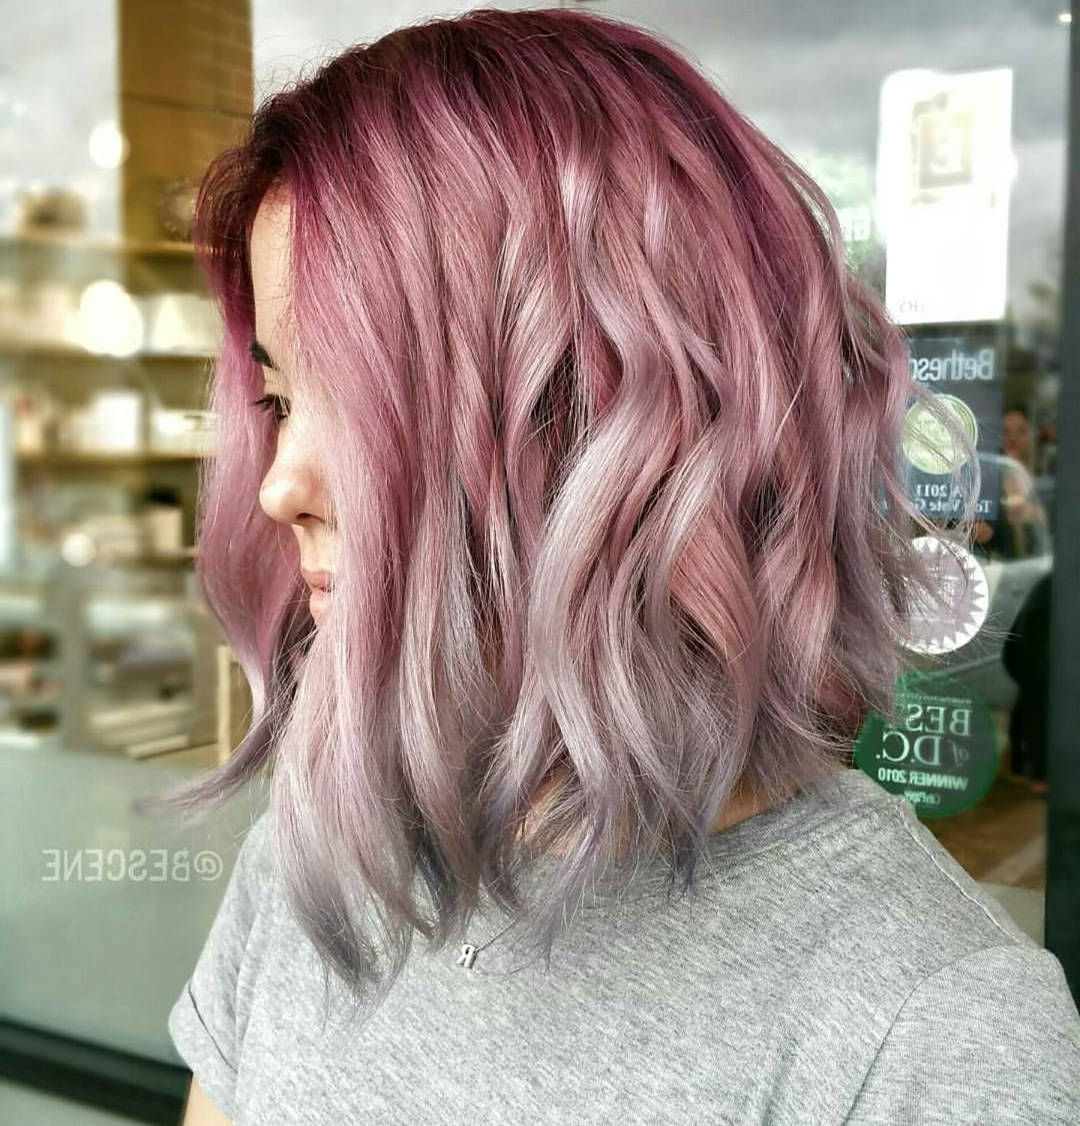 [%Most Recent Angled Wavy Lob Blonde Hairstyles For 30 Edgy Medium Length Haircuts For Thick Hair [August, 2018]|30 Edgy Medium Length Haircuts For Thick Hair [August, 2018] Intended For Most Recent Angled Wavy Lob Blonde Hairstyles%] (View 1 of 20)